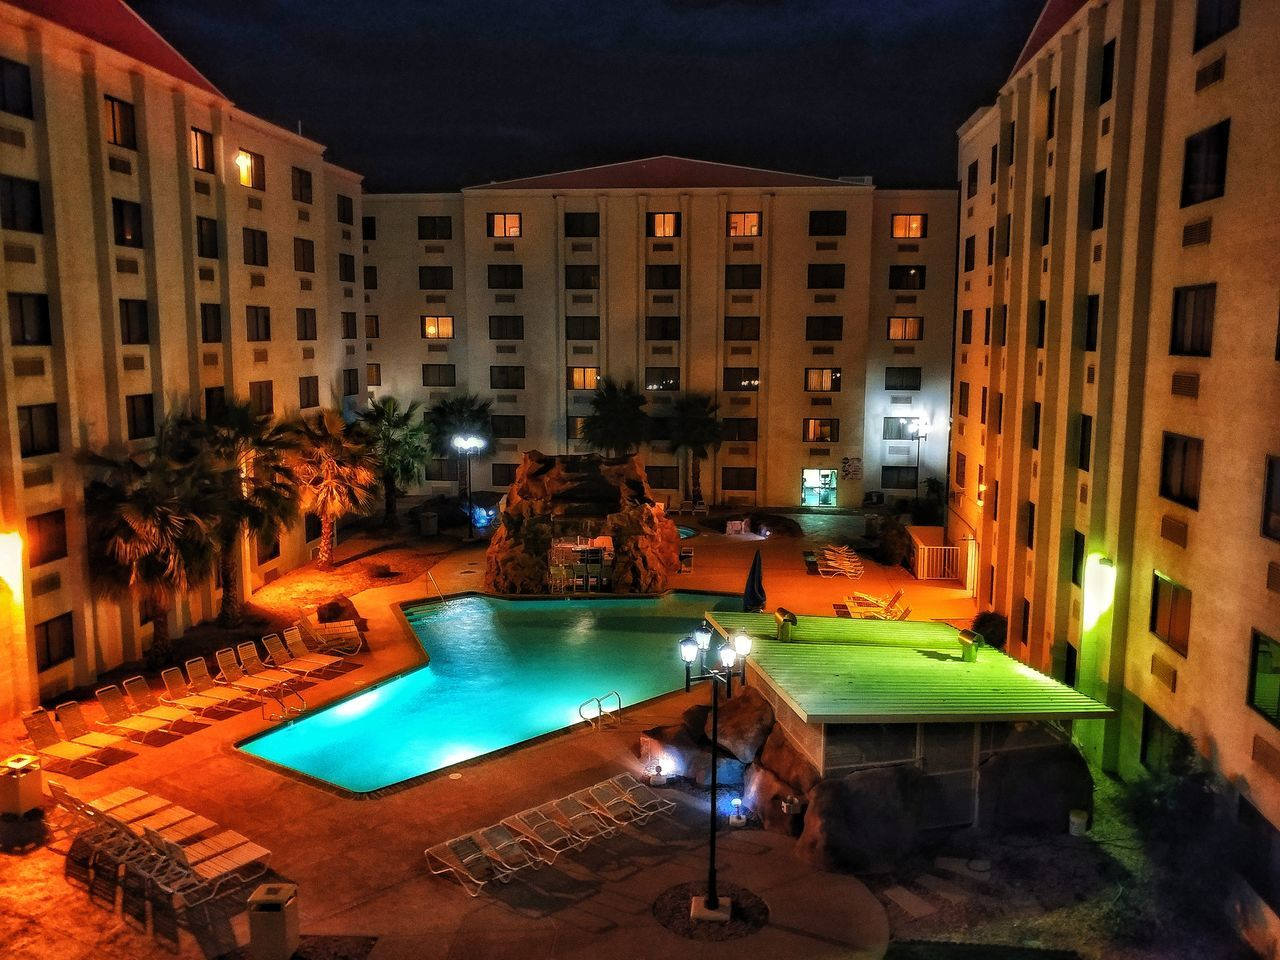 USA Photos Night View Nightshot Travel Night Lights Night Vision No People Hotel Outdoors Pool Architecture Nighttime Nightphotography Night Streamzoofamily Streamzoofamily Friends Live For The Story The Architect - 2017 EyeEm Awards